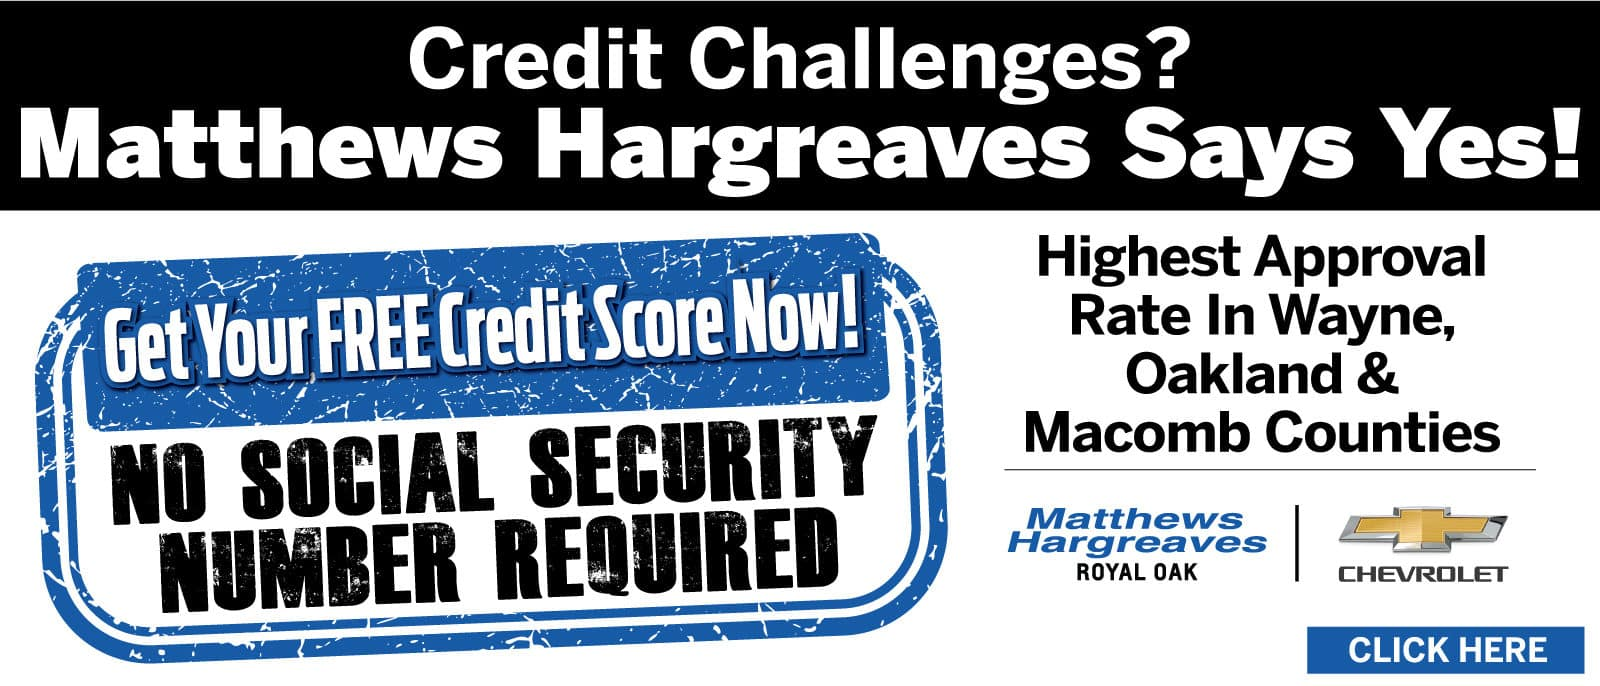 Credit Challenges? Matthews-Hargreaves Says Yes!